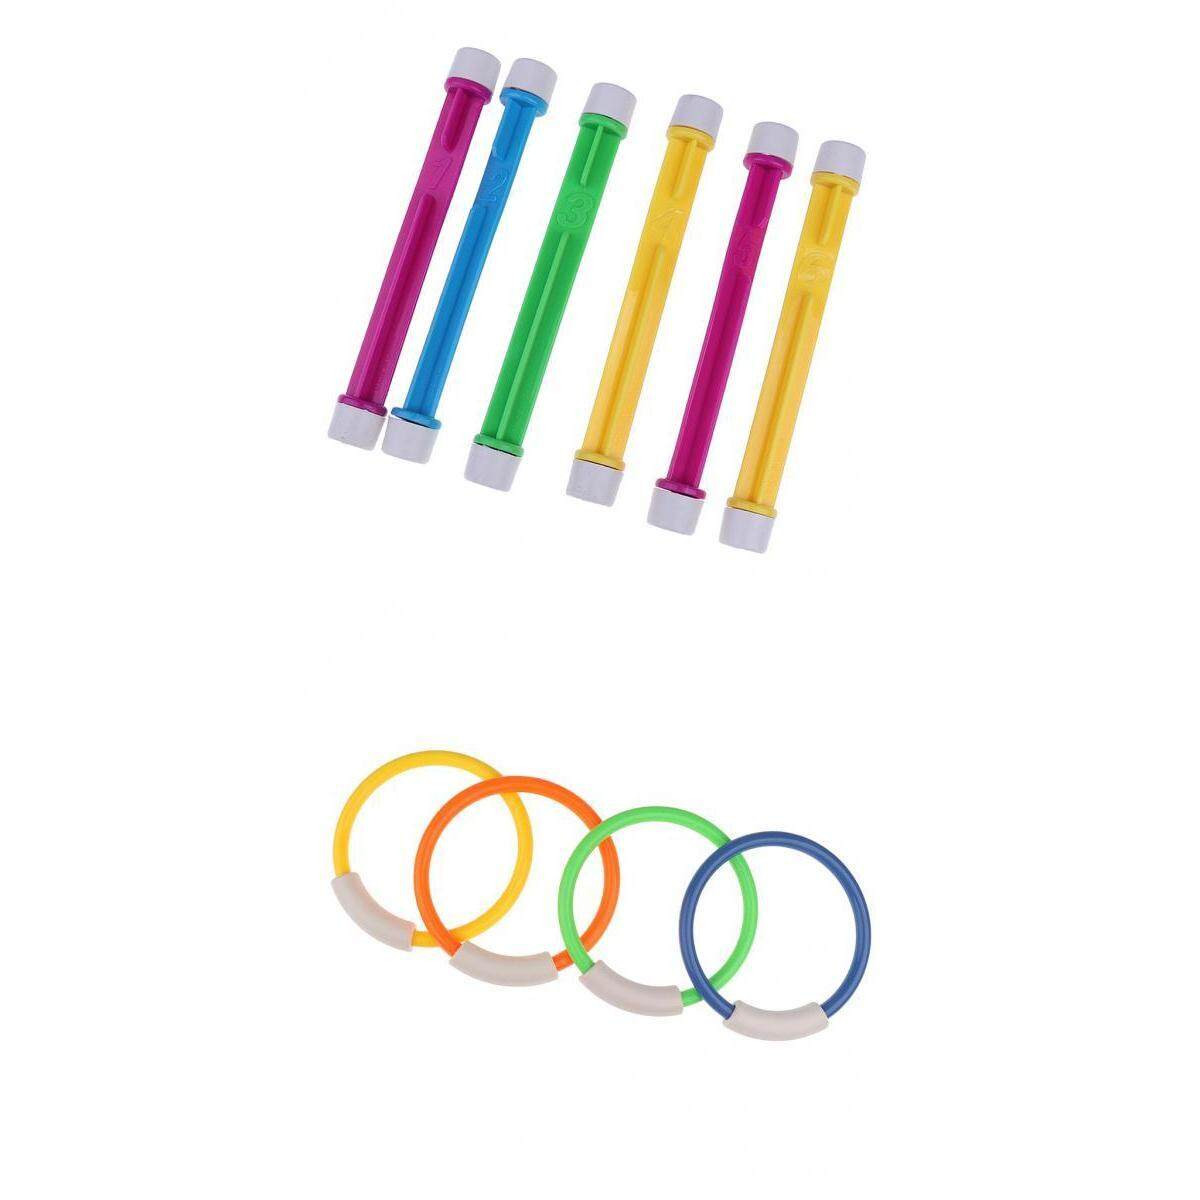 MagiDeal 6 Swim Swimming Pool Accessories Kids Play Diving Game Underwater Dive Sticks + 4 Diving Rings Children Swimming Teaching Aids Birthday Chrismas Gifts